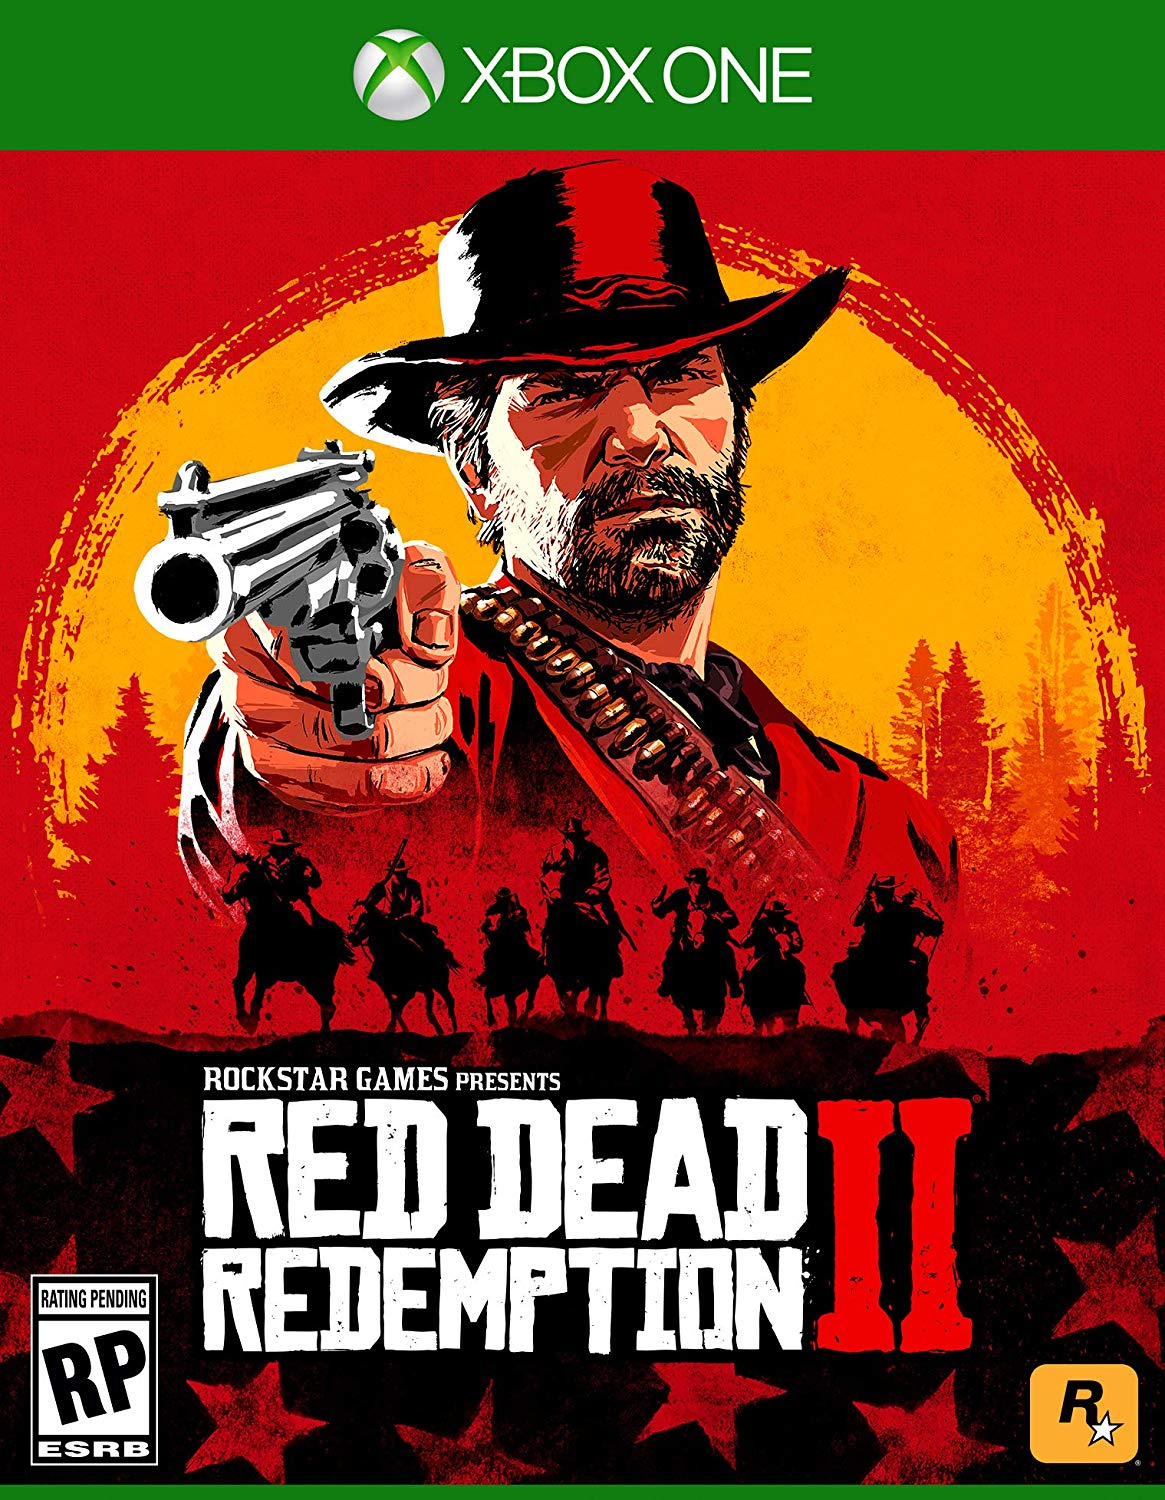 Red Dead Redemption 2 giveaway Giveaway Image